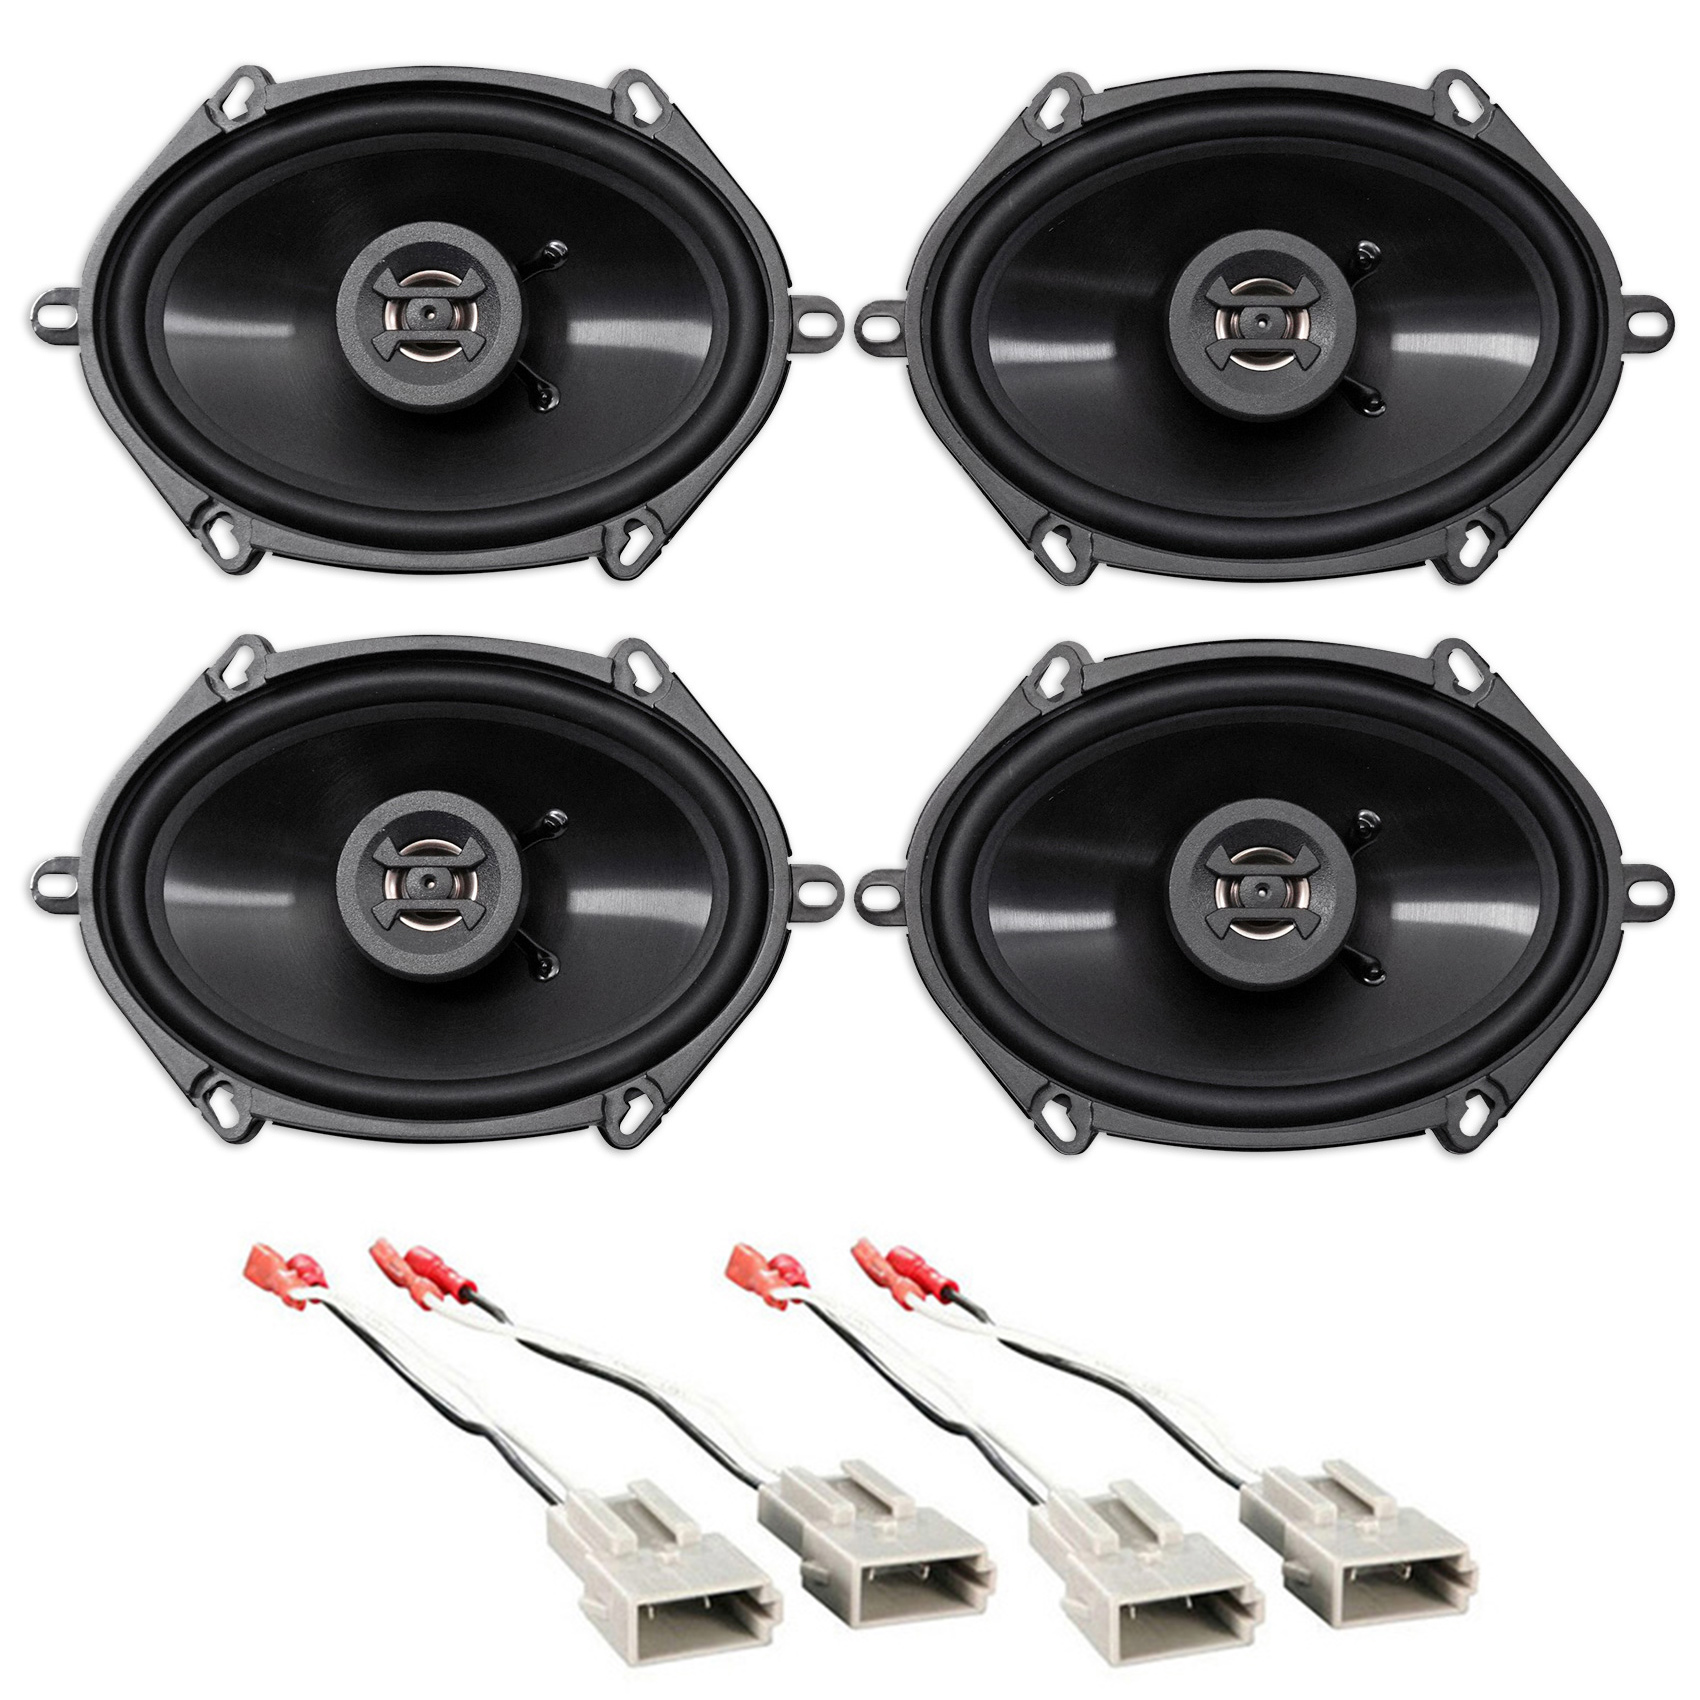 Car Rear Hifonics Factory Speaker Replacement Kit For 2003-2011 Lincoln Town